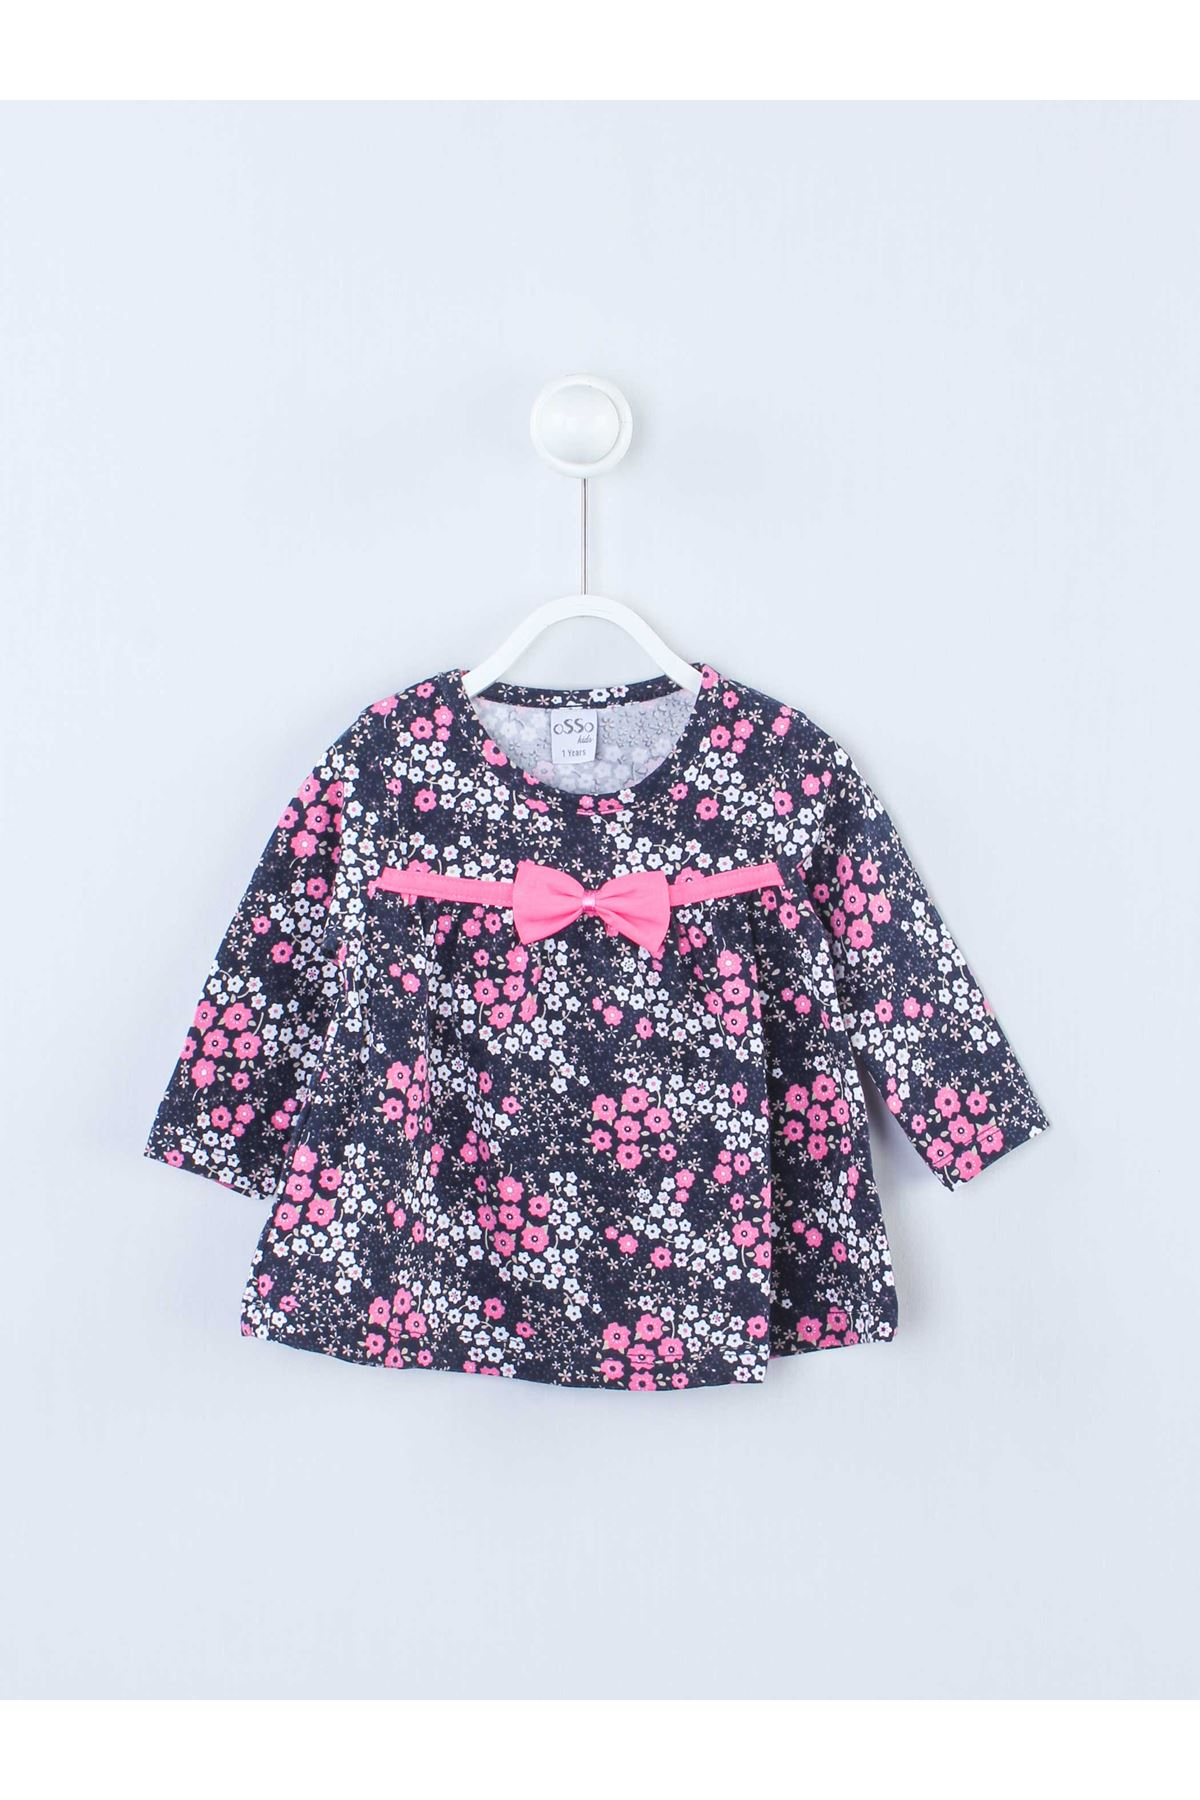 Fuchsia Kids Child girls tights suit top T-shirt tights cotton daily season wear outfit models